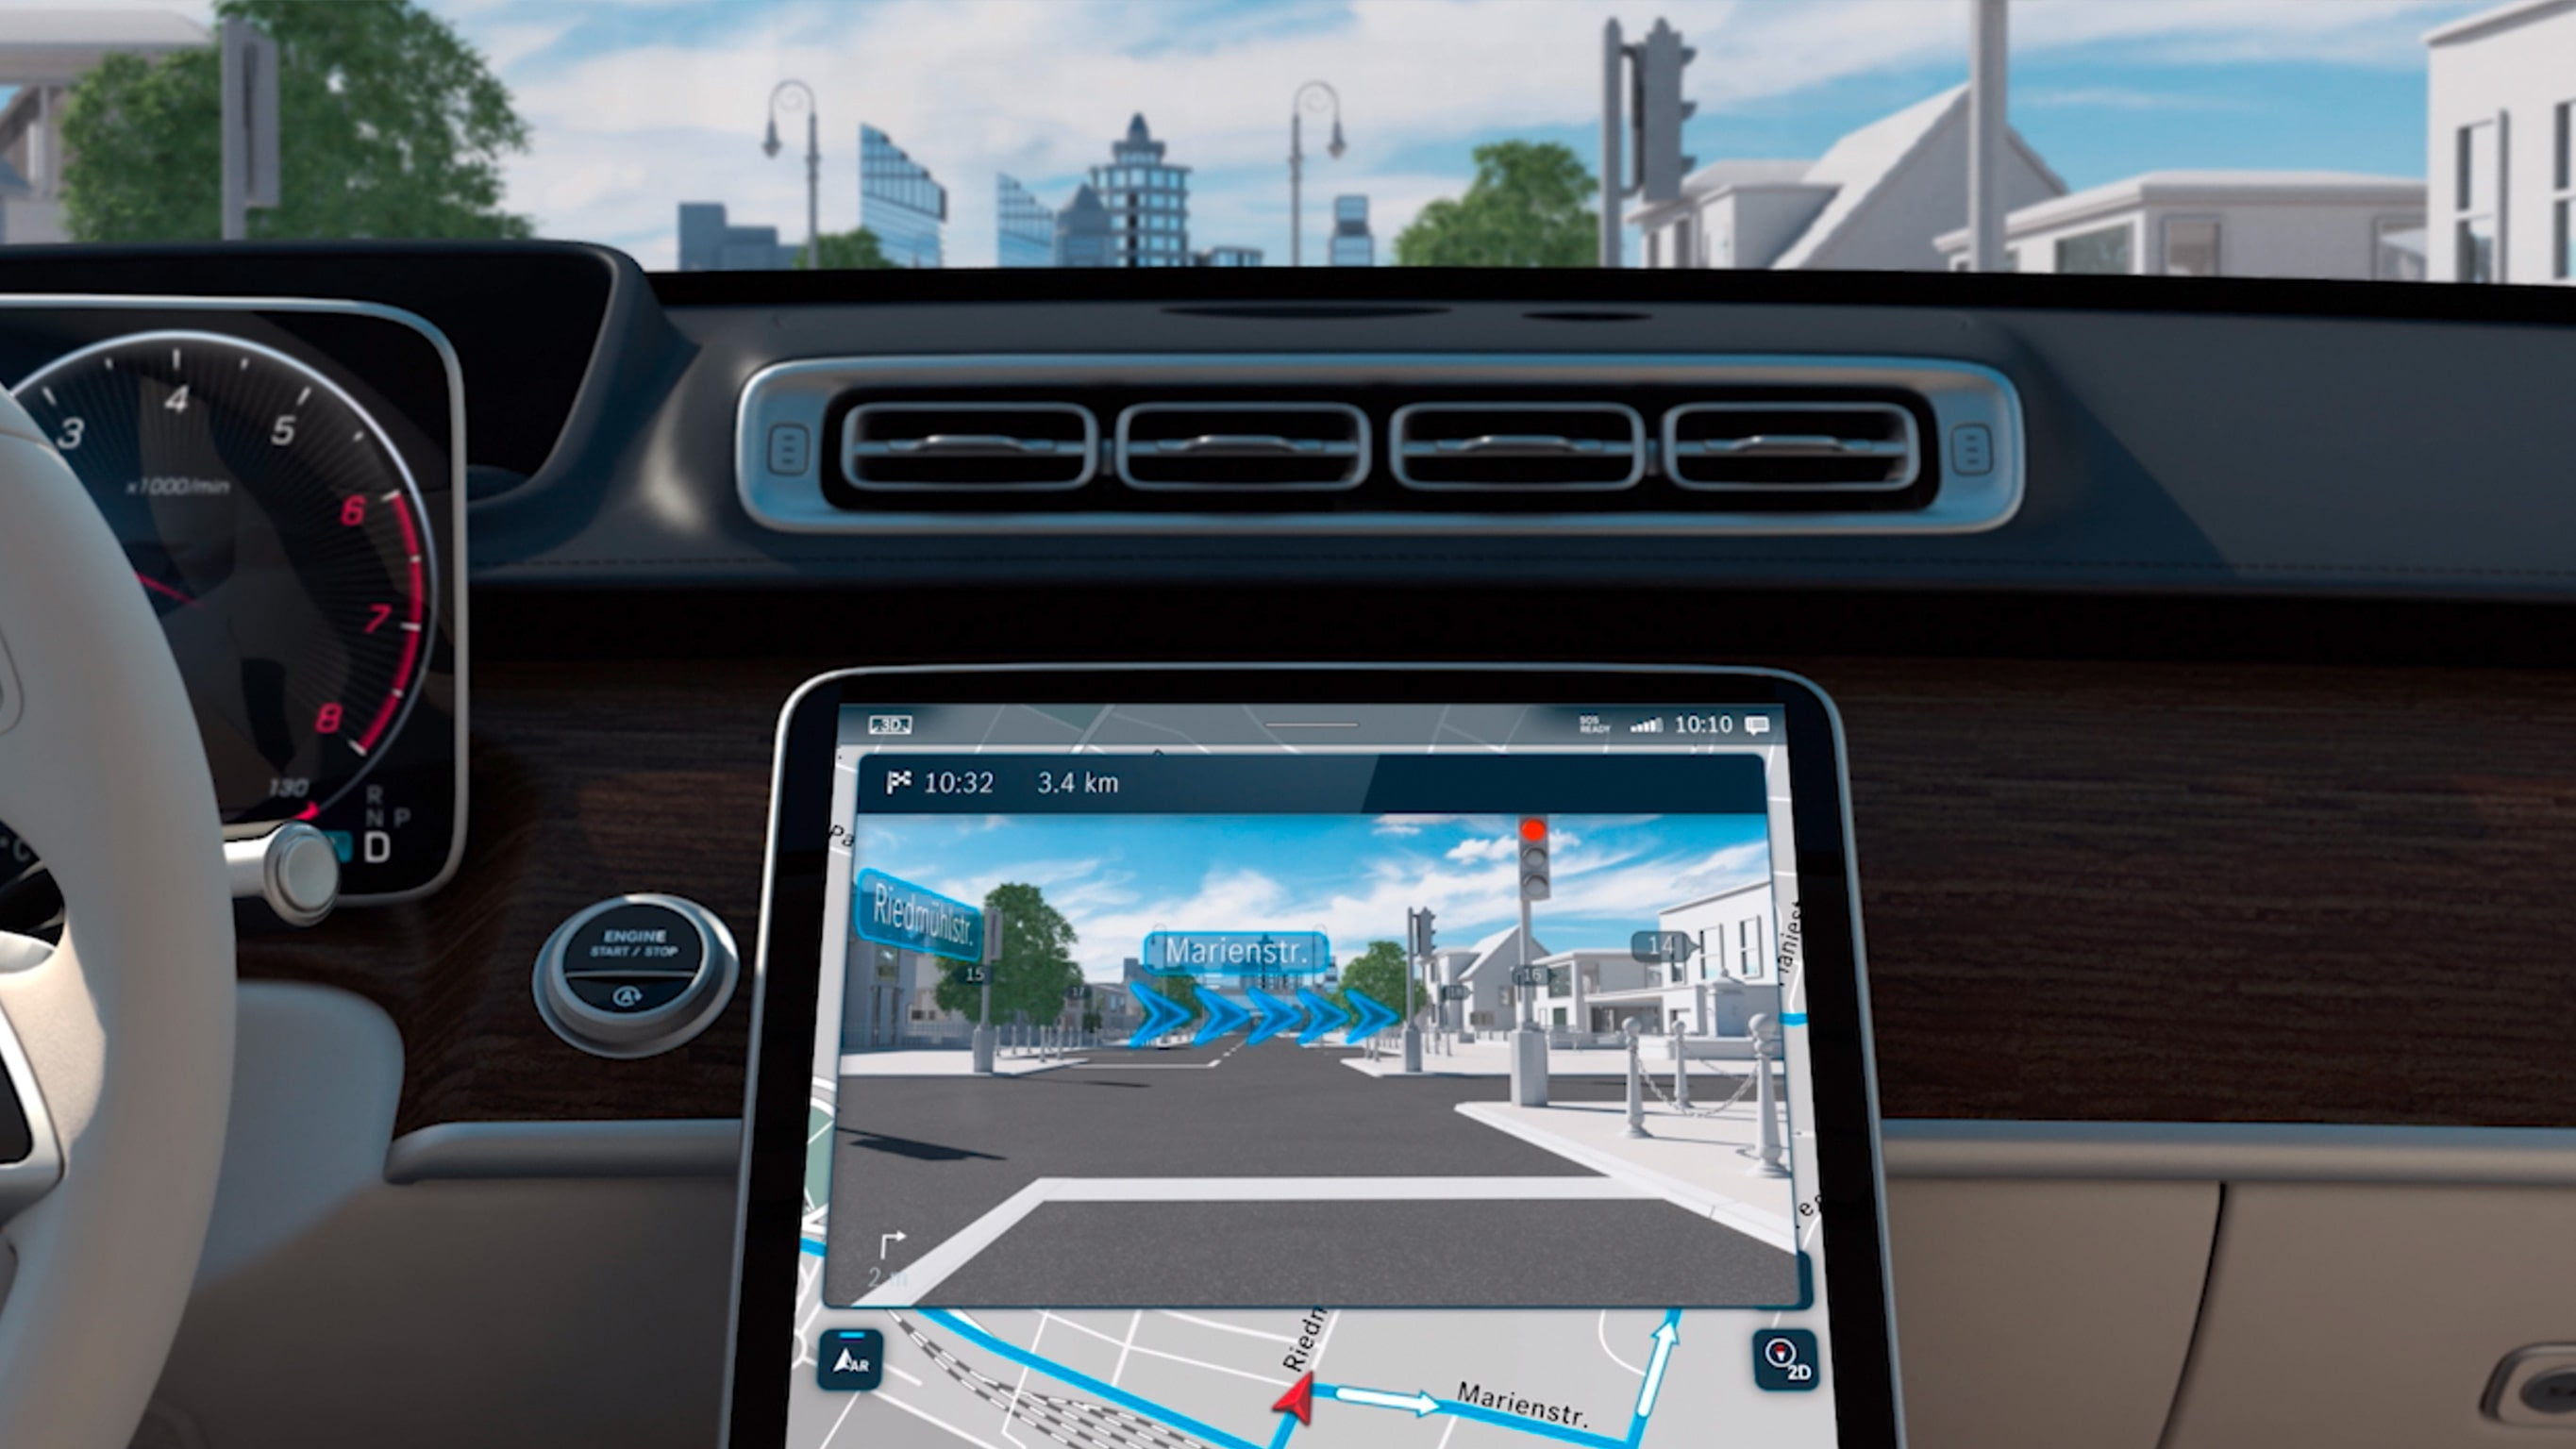 The video shows the functions of the MBUX Augmented Reality Navigation.